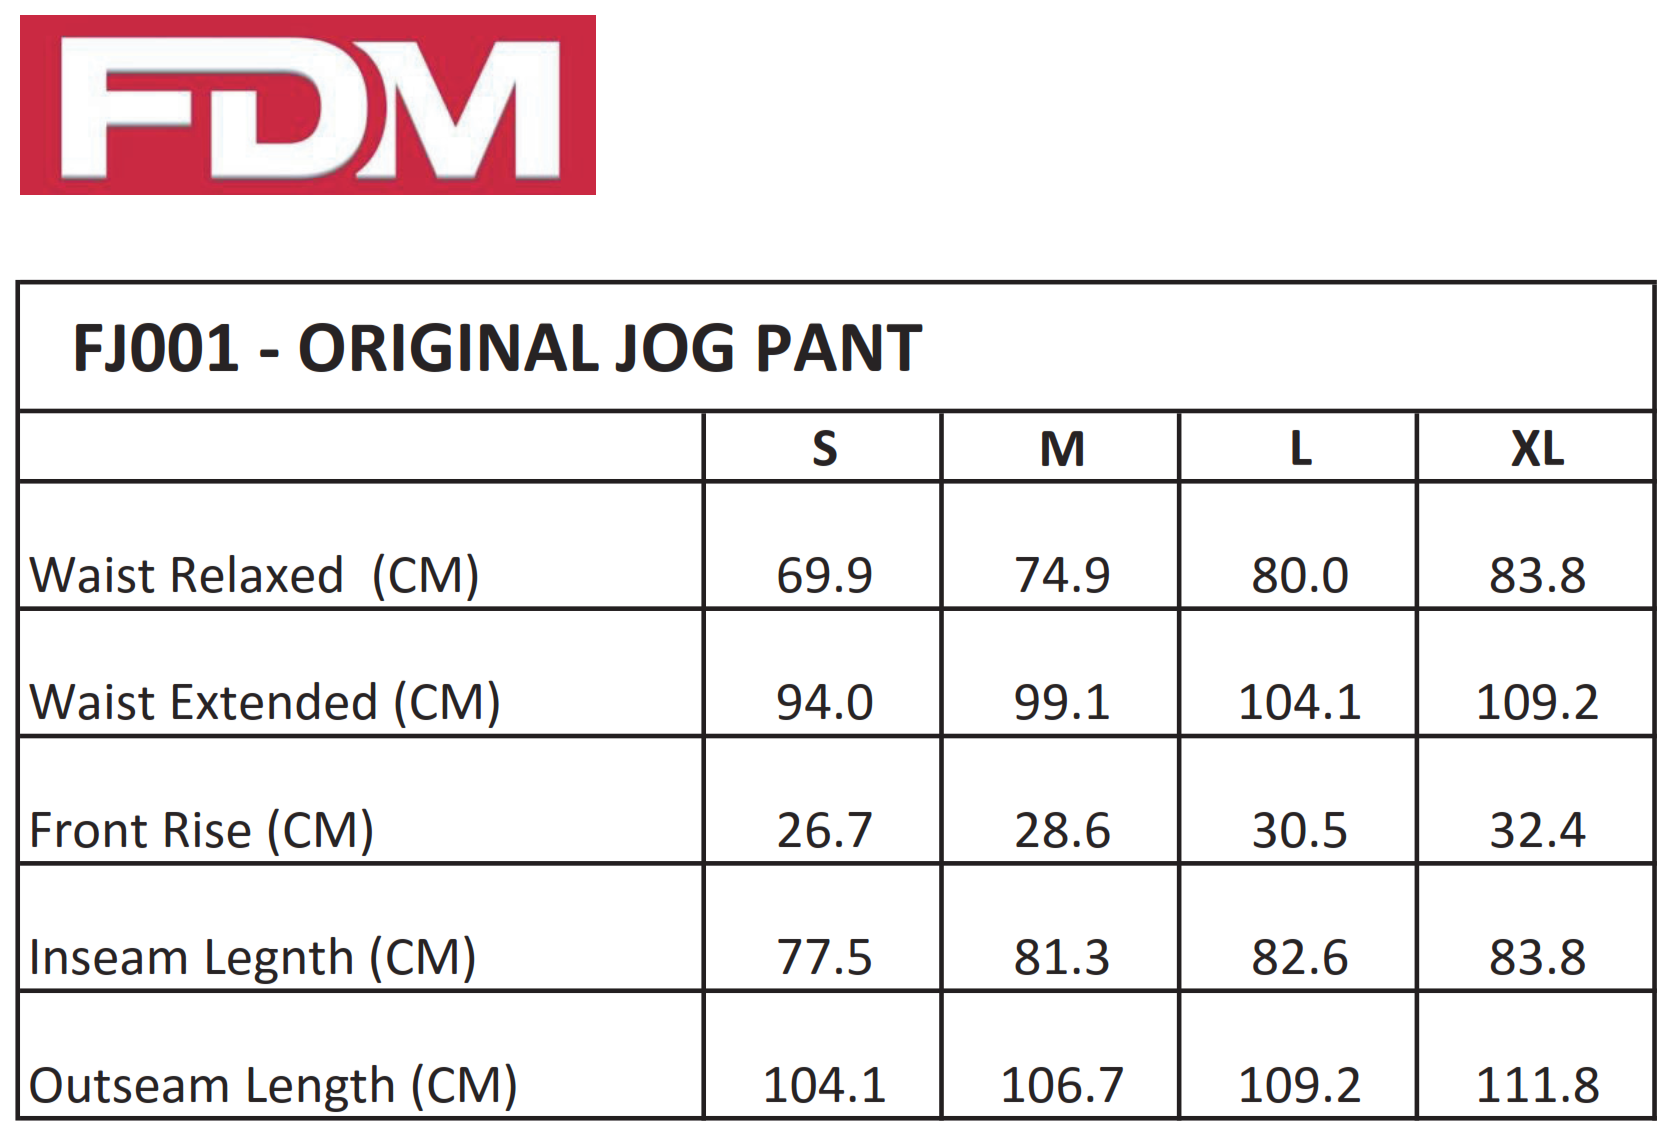 FDM: Original Jog Pants FJ001